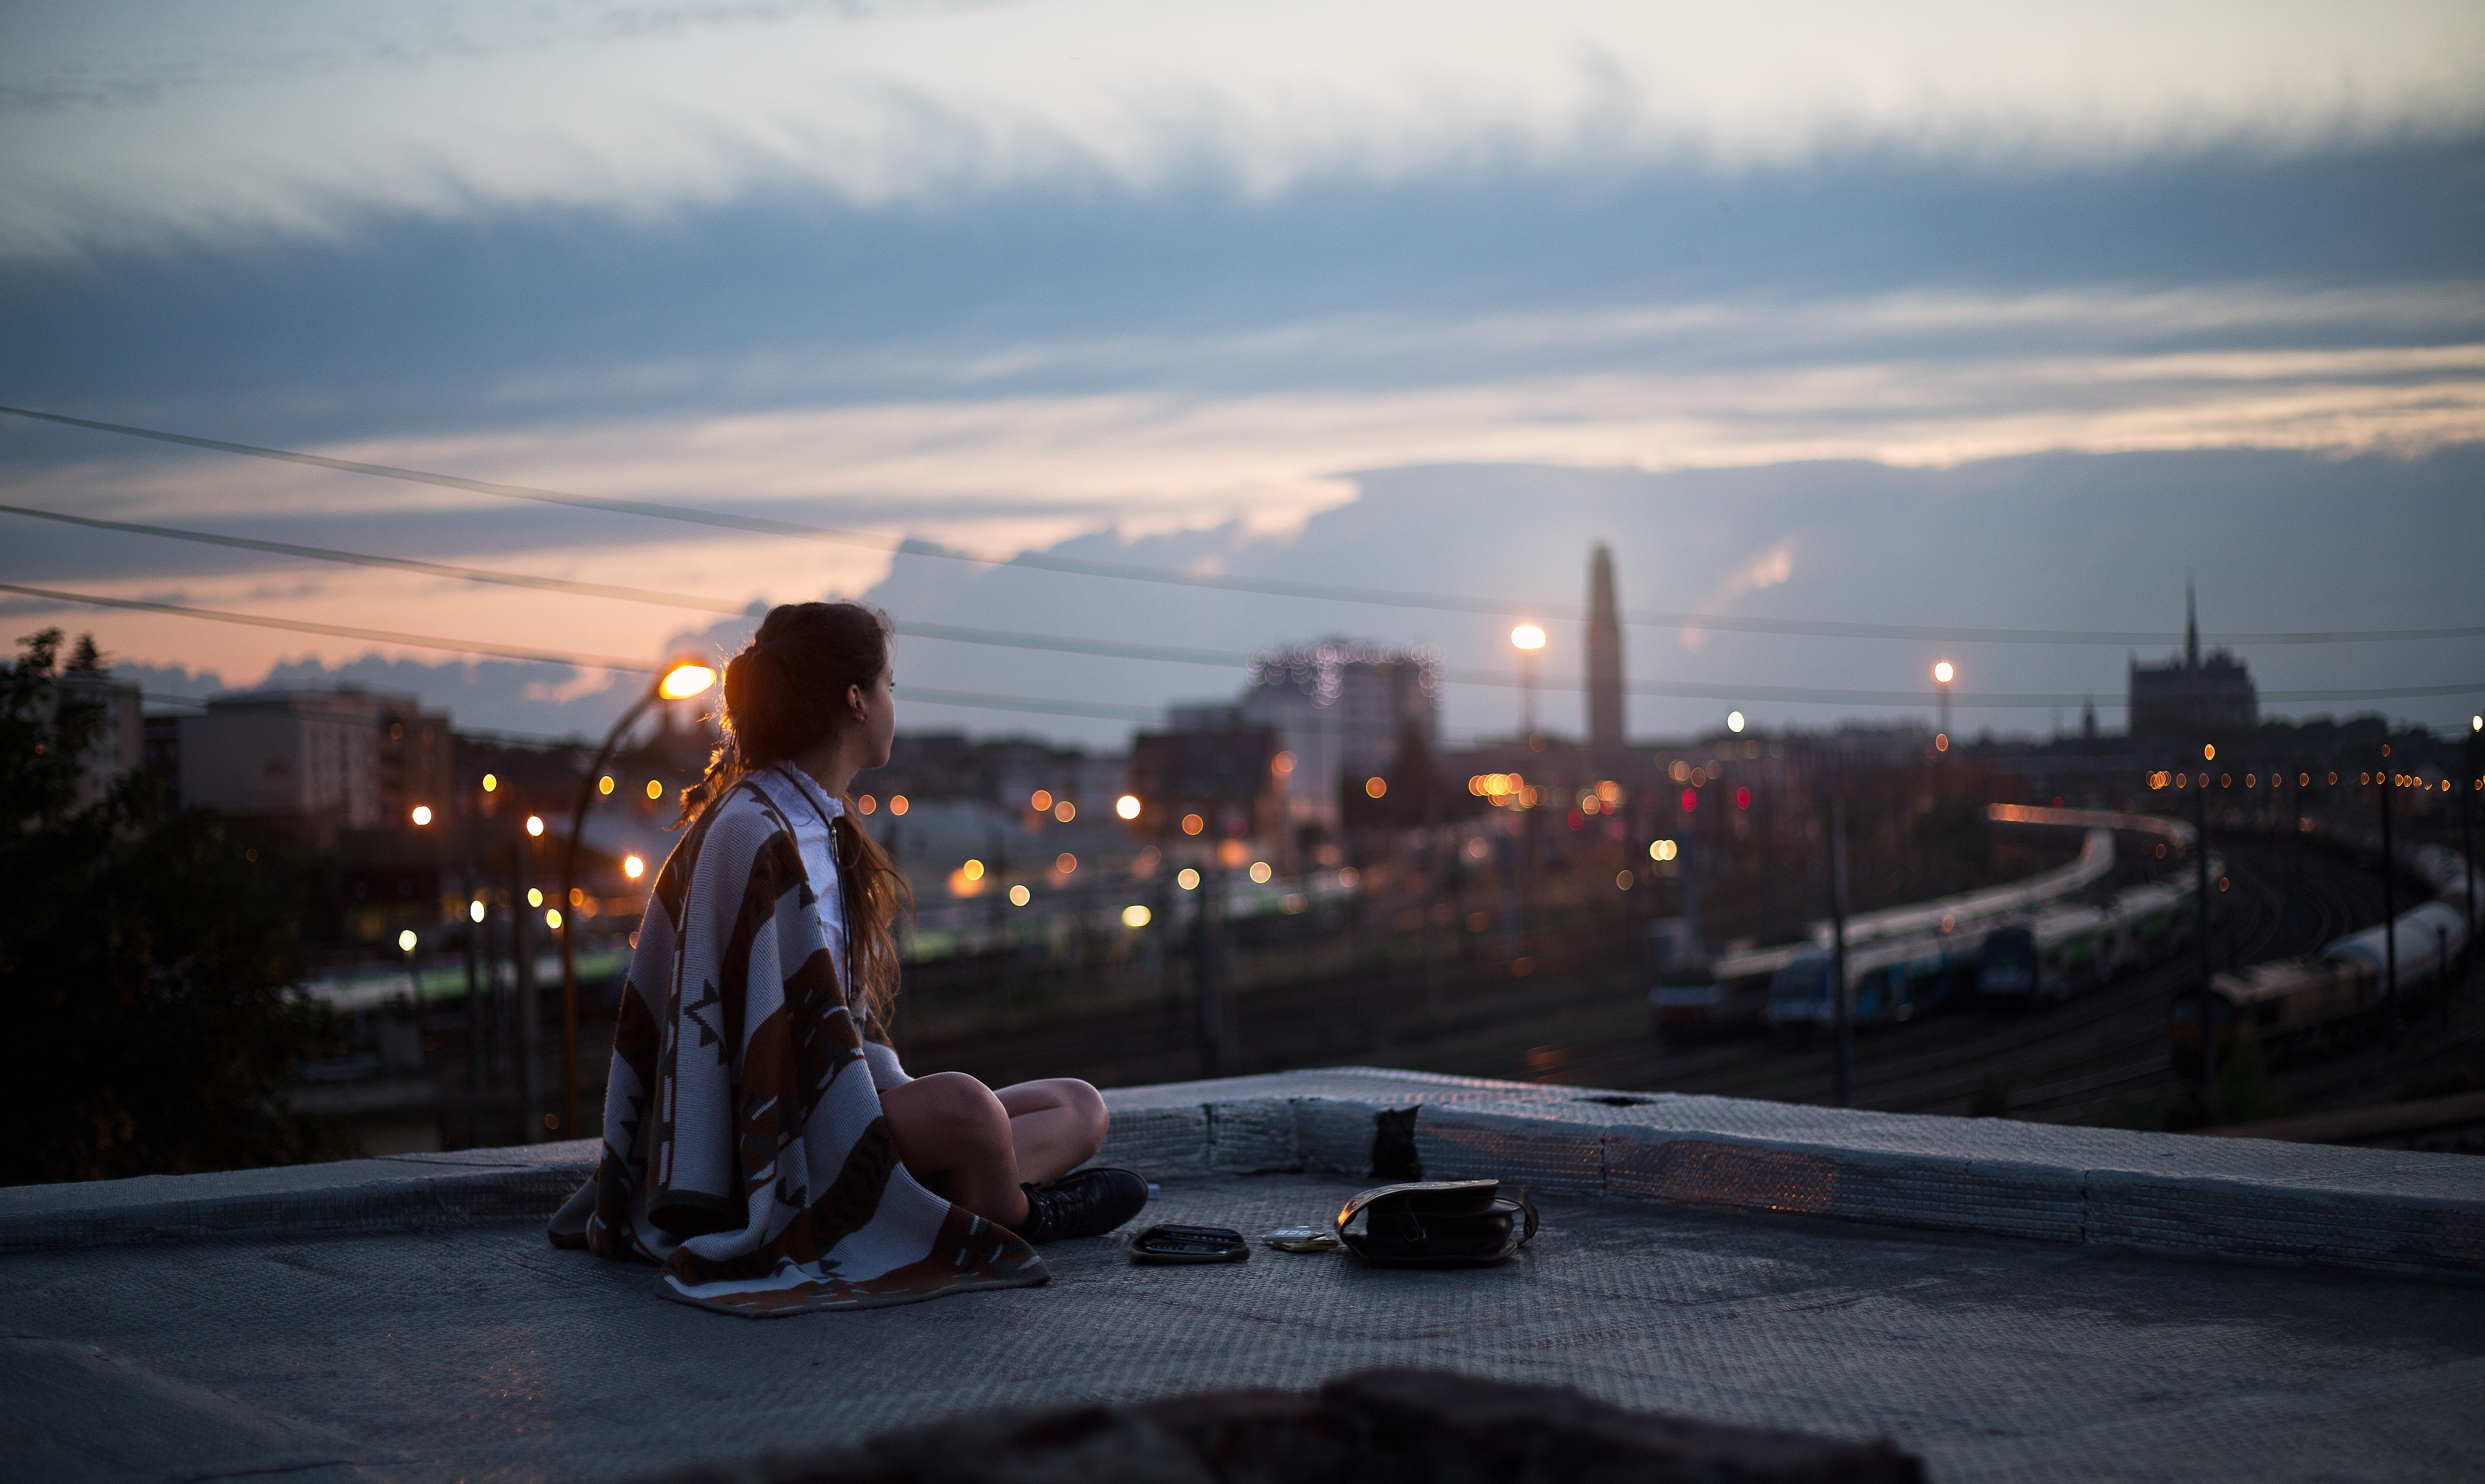 girl sitting on rooftop looking towards town 1575665237 - Girl Sitting On Rooftop Looking Towards Town -